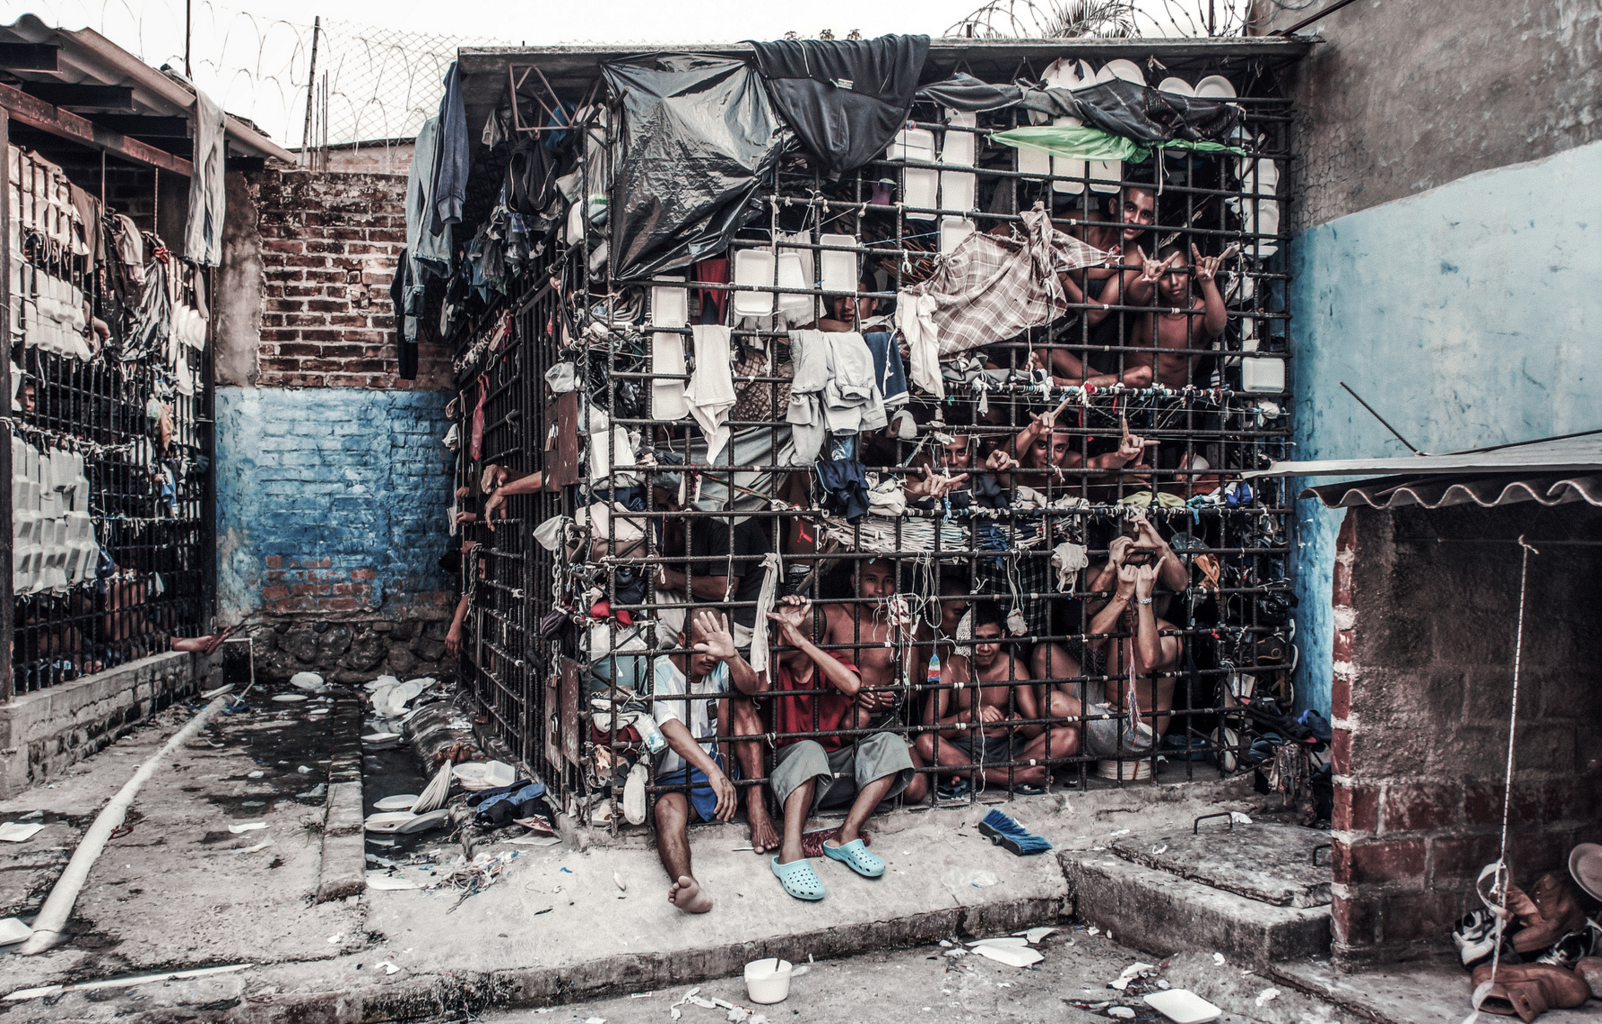 prison overcrowding in latin america a plea for less prison overcrowding in latin america a plea for less criminalization brown political review